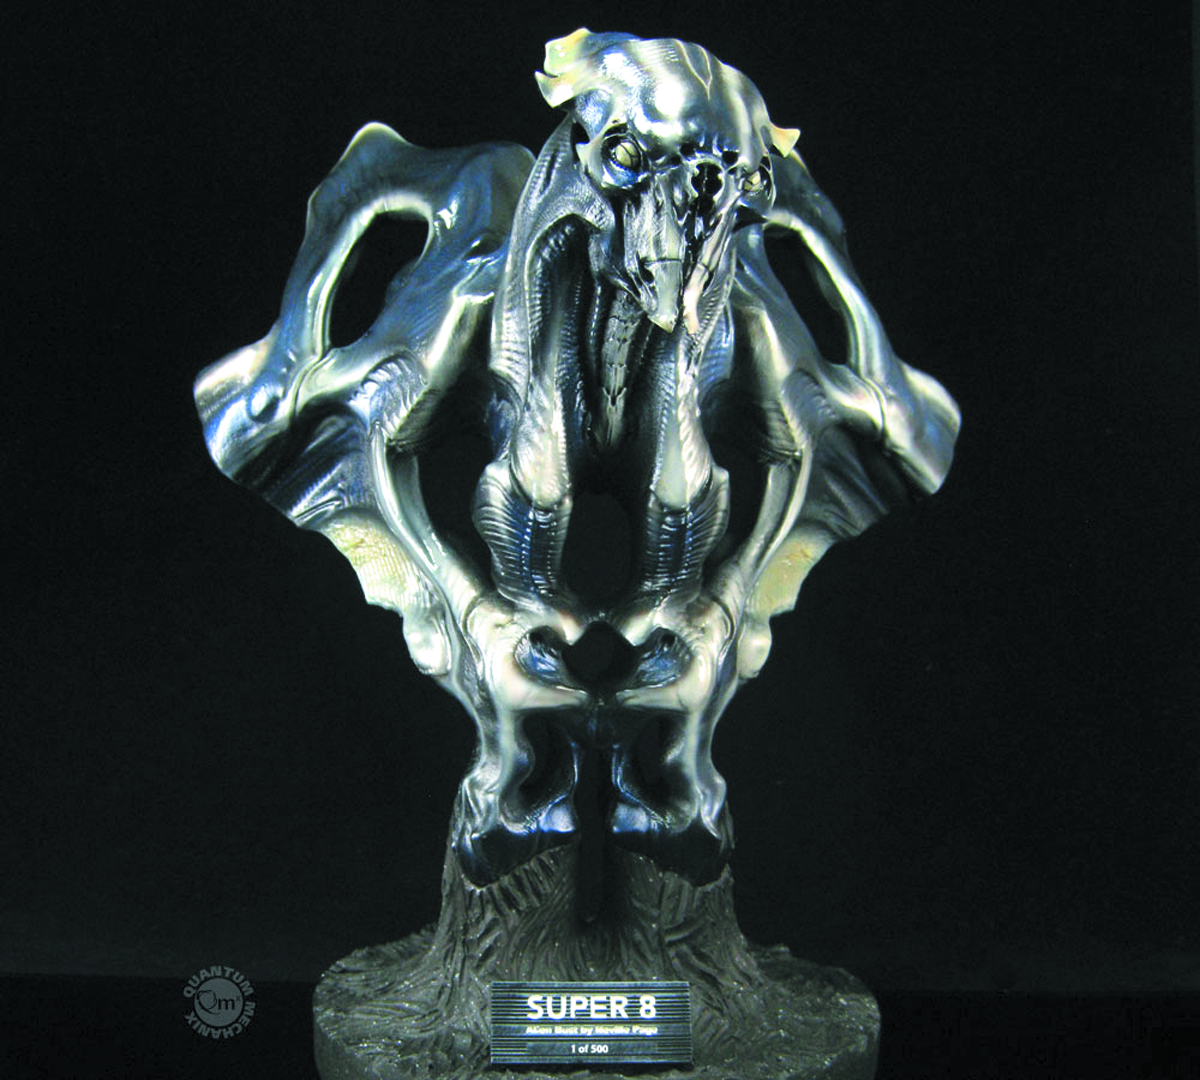 SUPER 8 ALIEN LE BUST